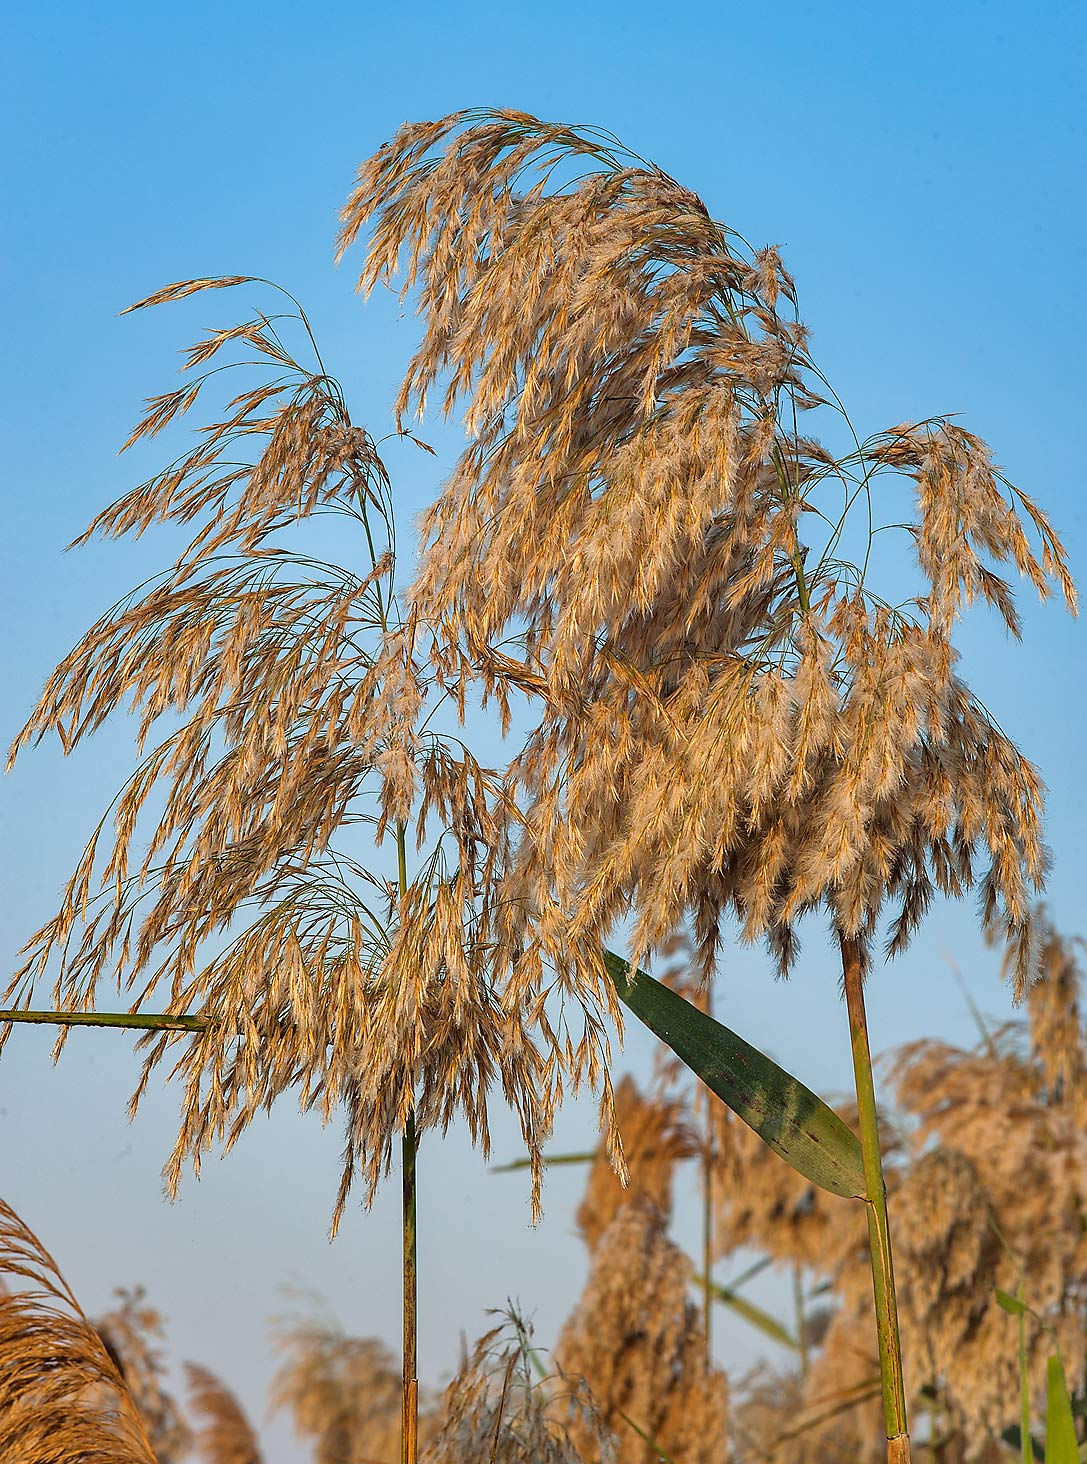 Panicle inflorescence (seed head) of common reed...in Irkhaya (Irkaya) Farms. Qatar